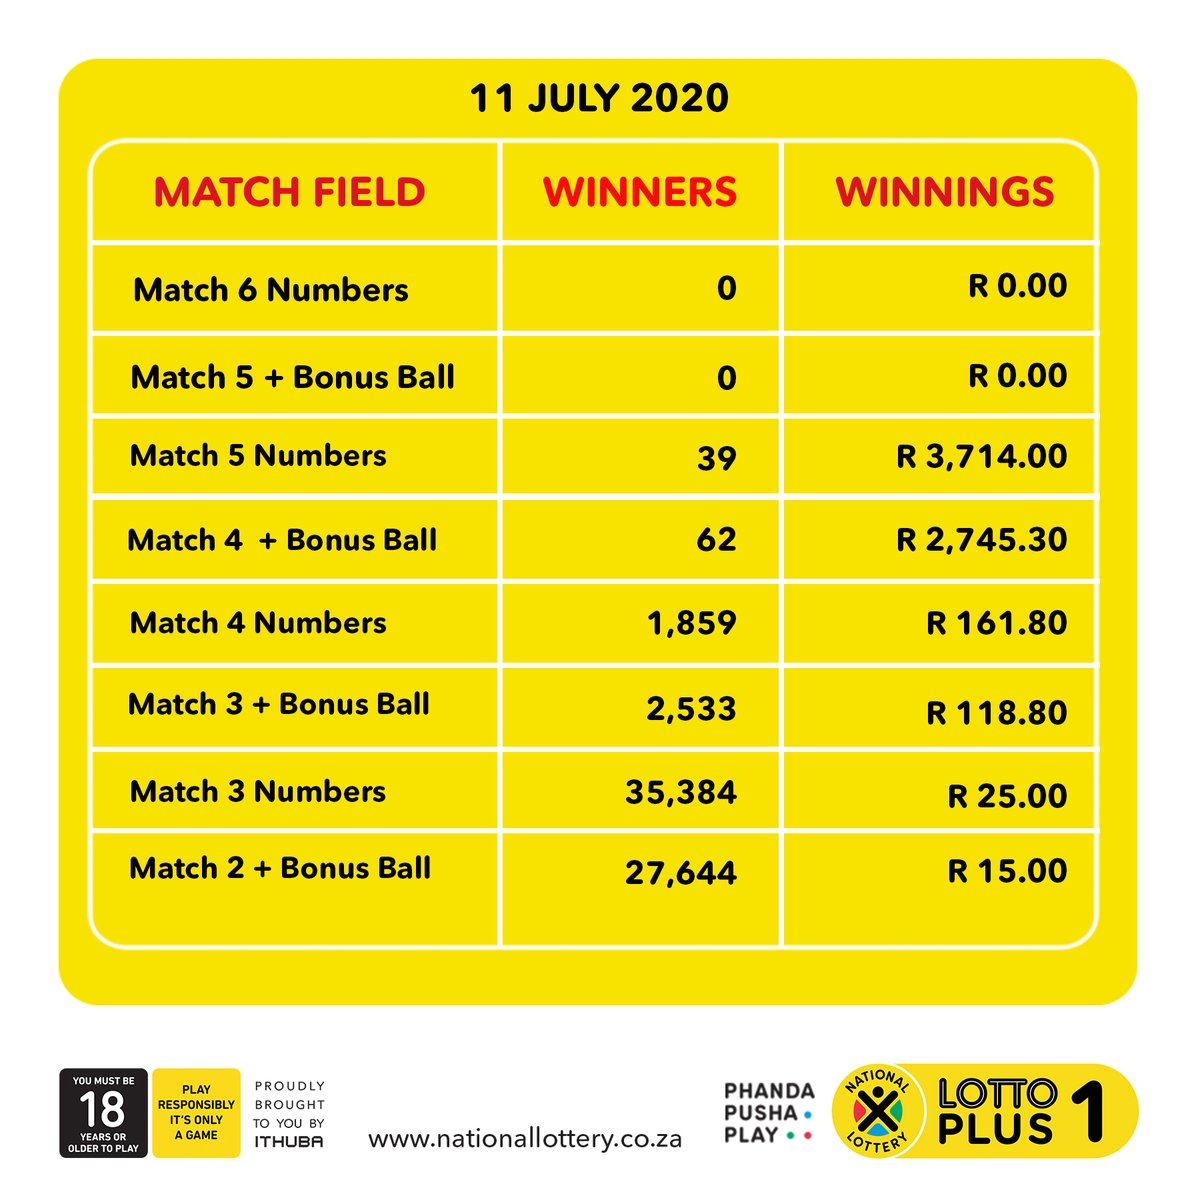 Here are #dividends for the #LOTTOPLUS 1 draw on (11/07/20)! You have another chance to win the rollover jackpot!